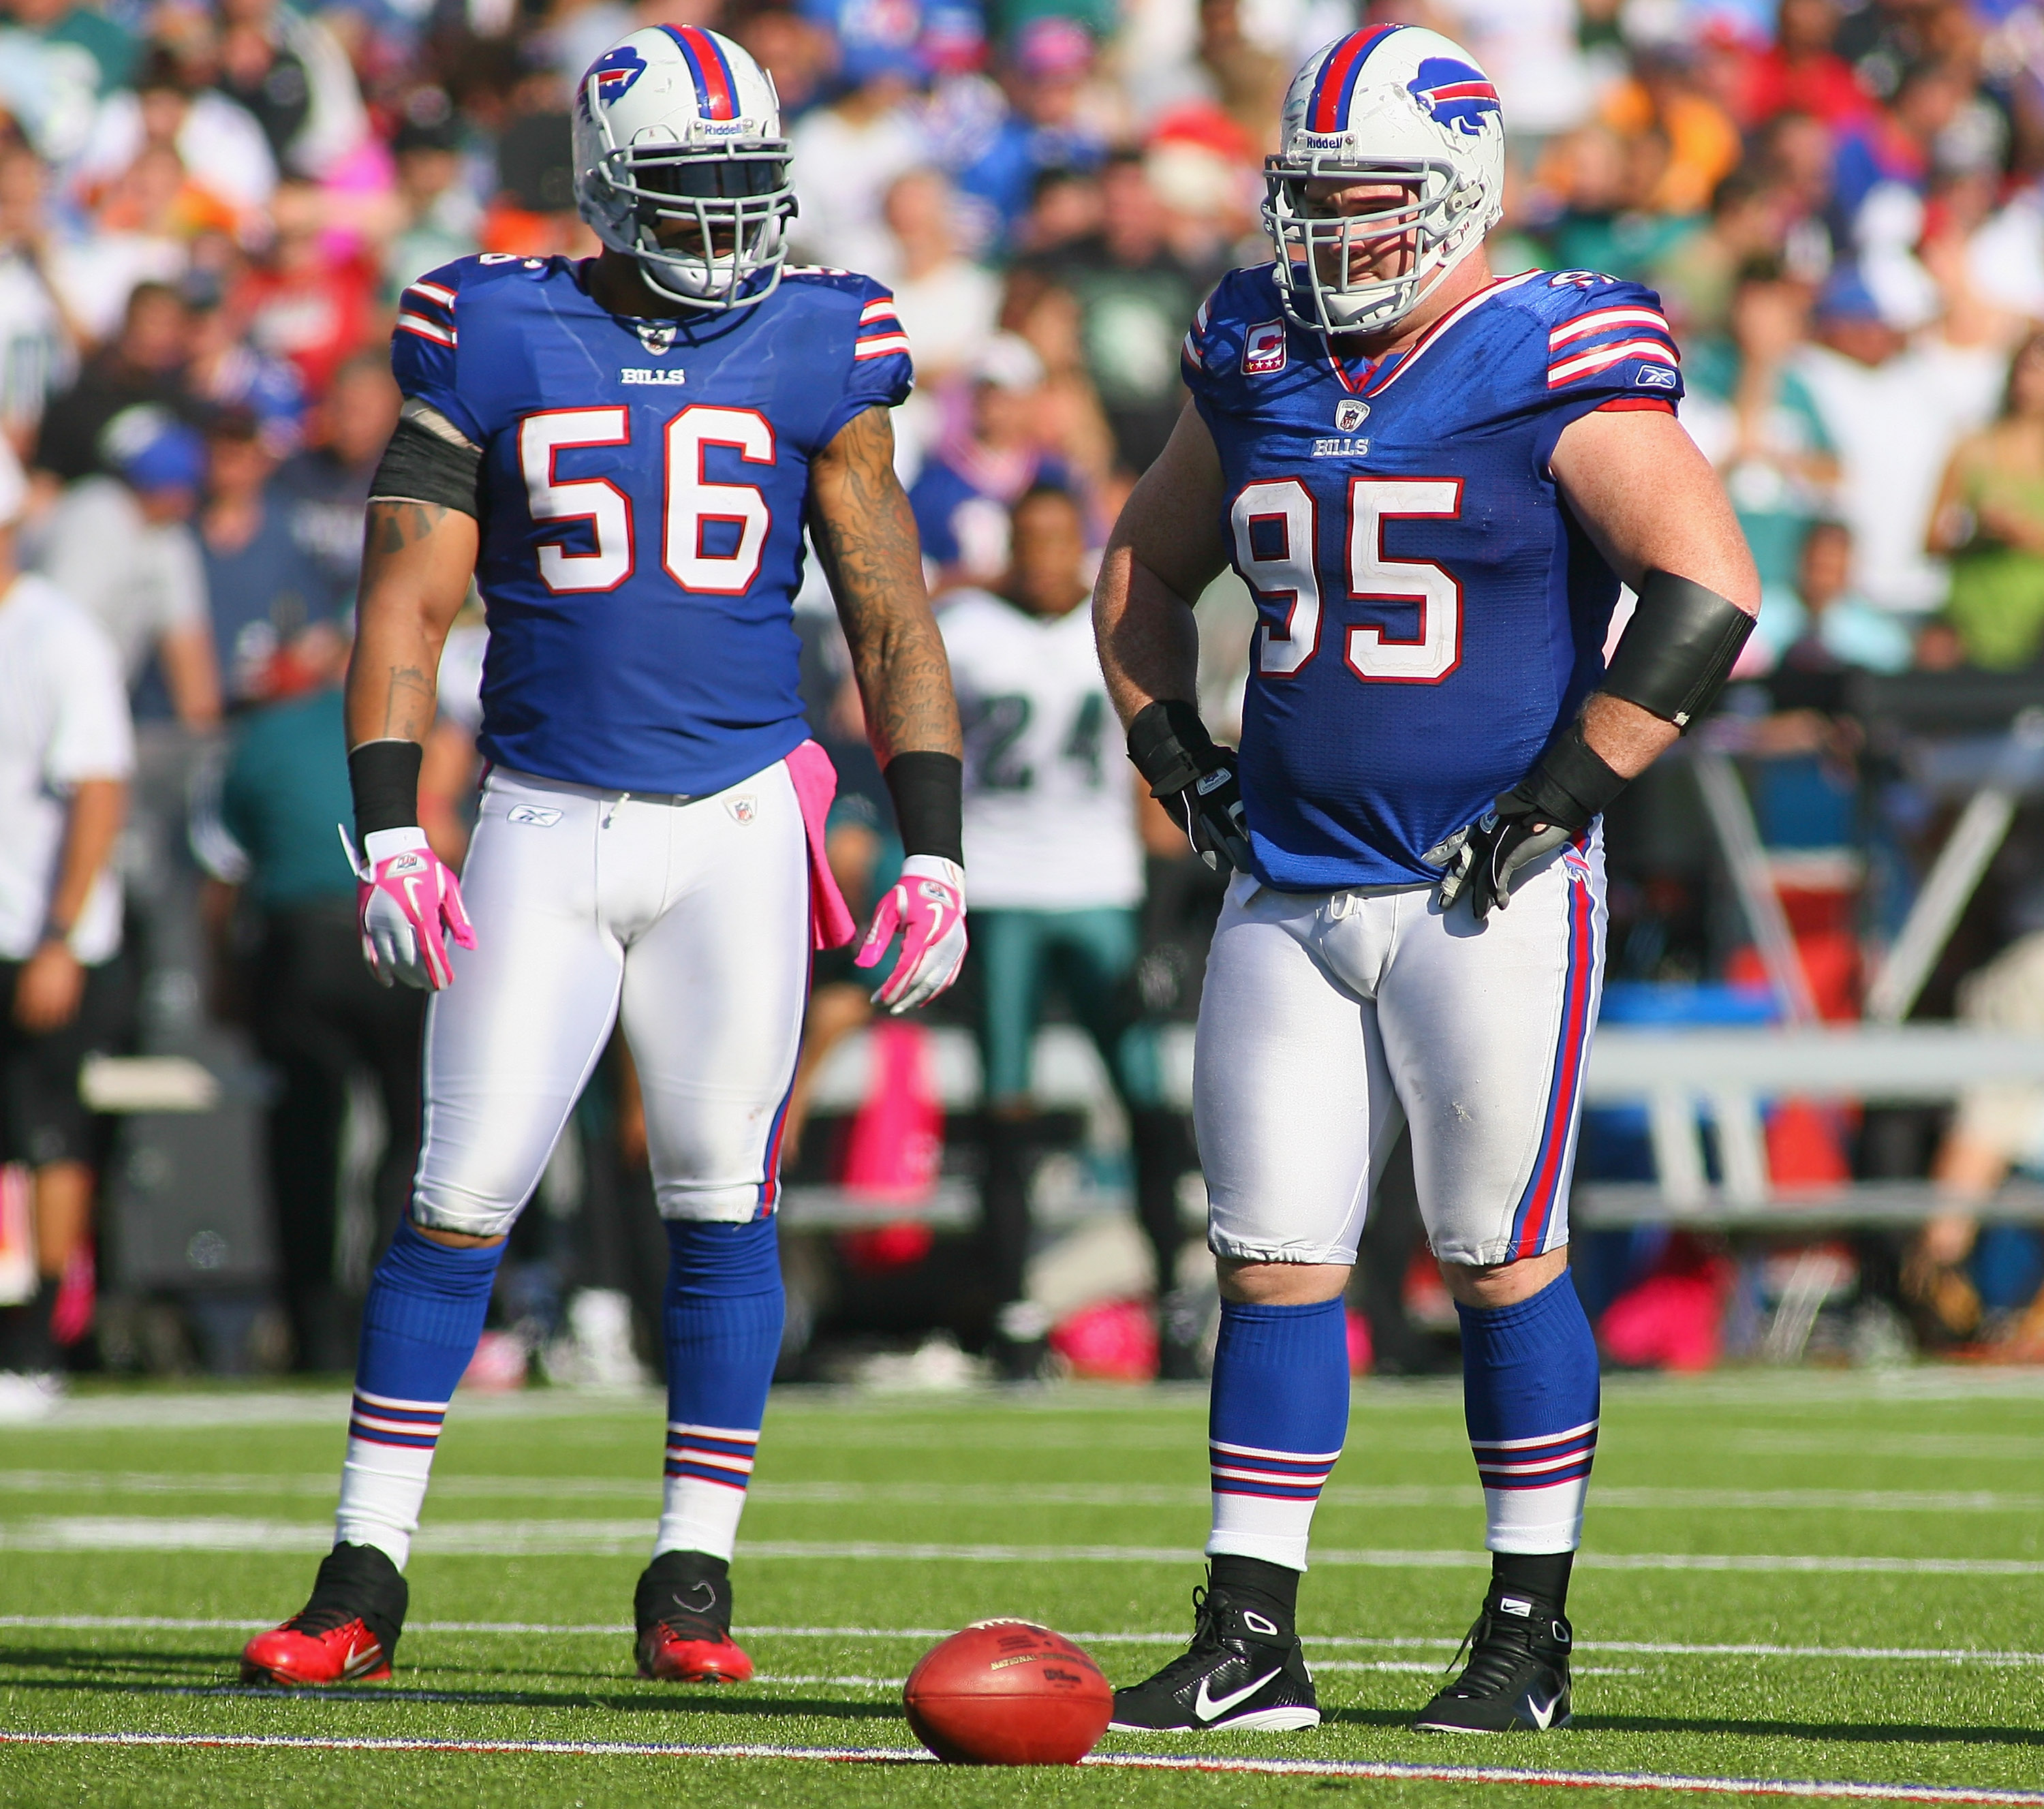 Williams has lined up alongside a vast array of teammates, including Shawne Merriman. (Getty Images)